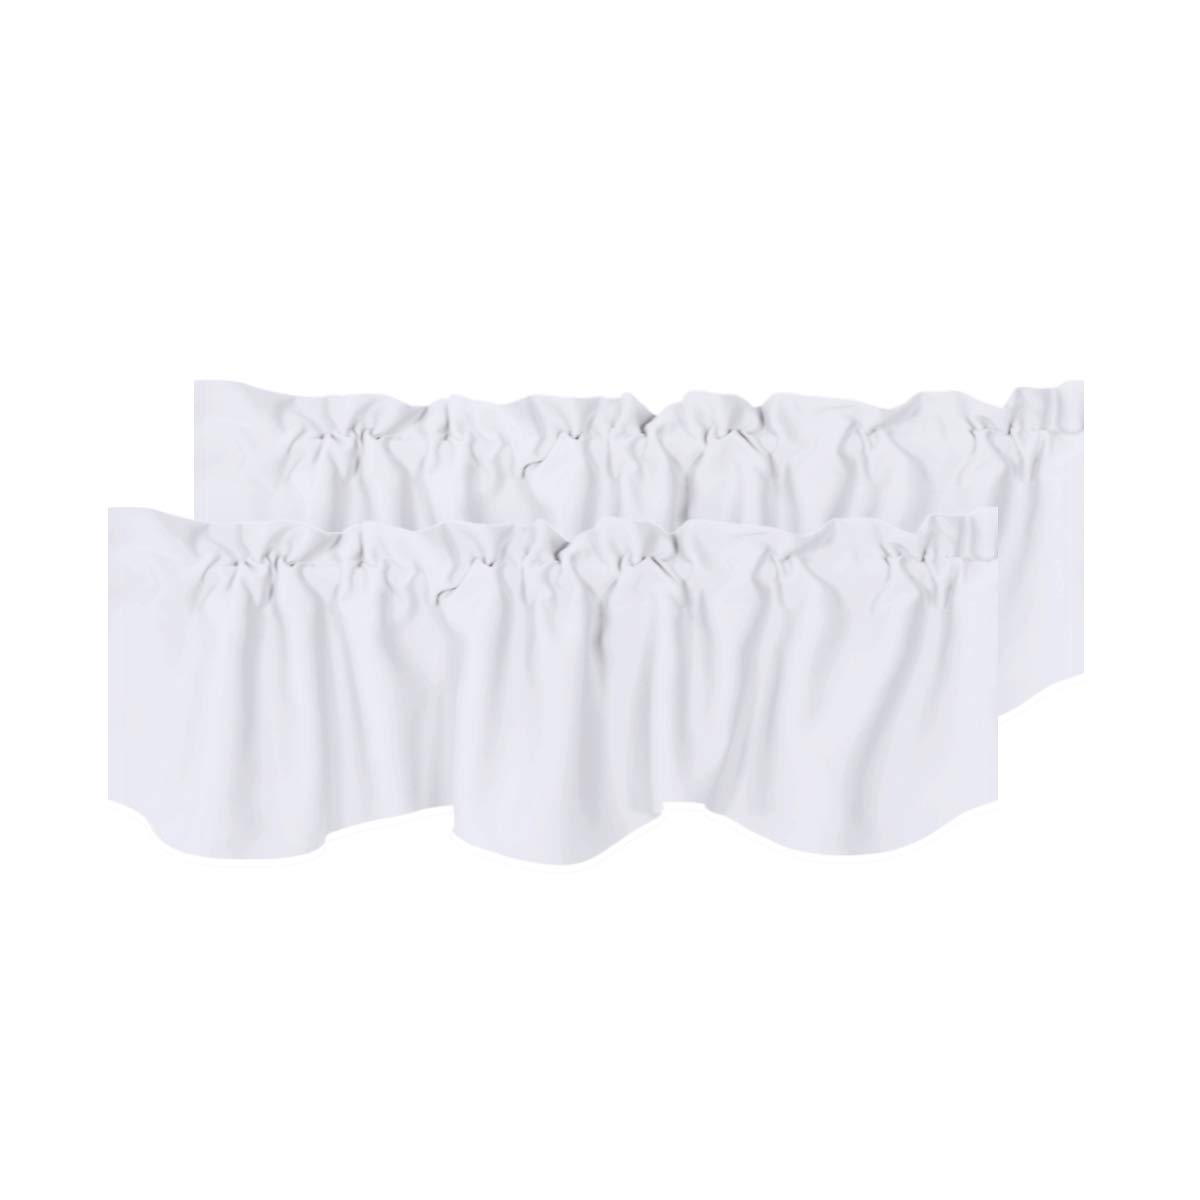 H.VERSAILTEX Privacy Protection Kitchen Valances for Windows Room Darkening Curtain Valances for Bedroom, Rod Pocket Top, 2 Pack, Pure White, 52 x 18 Inch